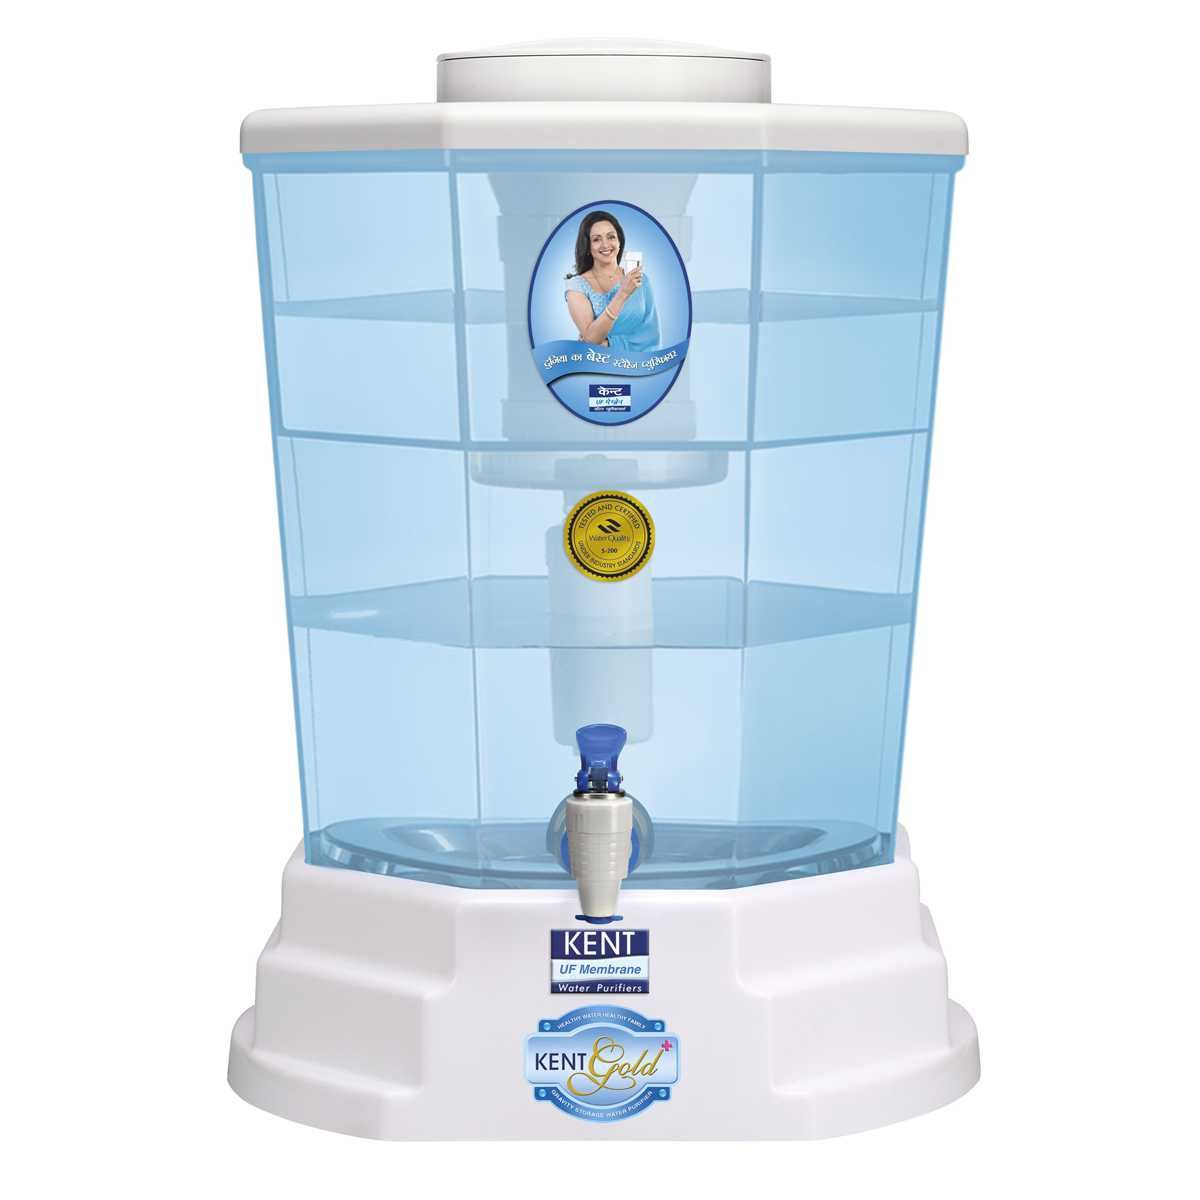 Picture of Kent Gold + Water Purifiers